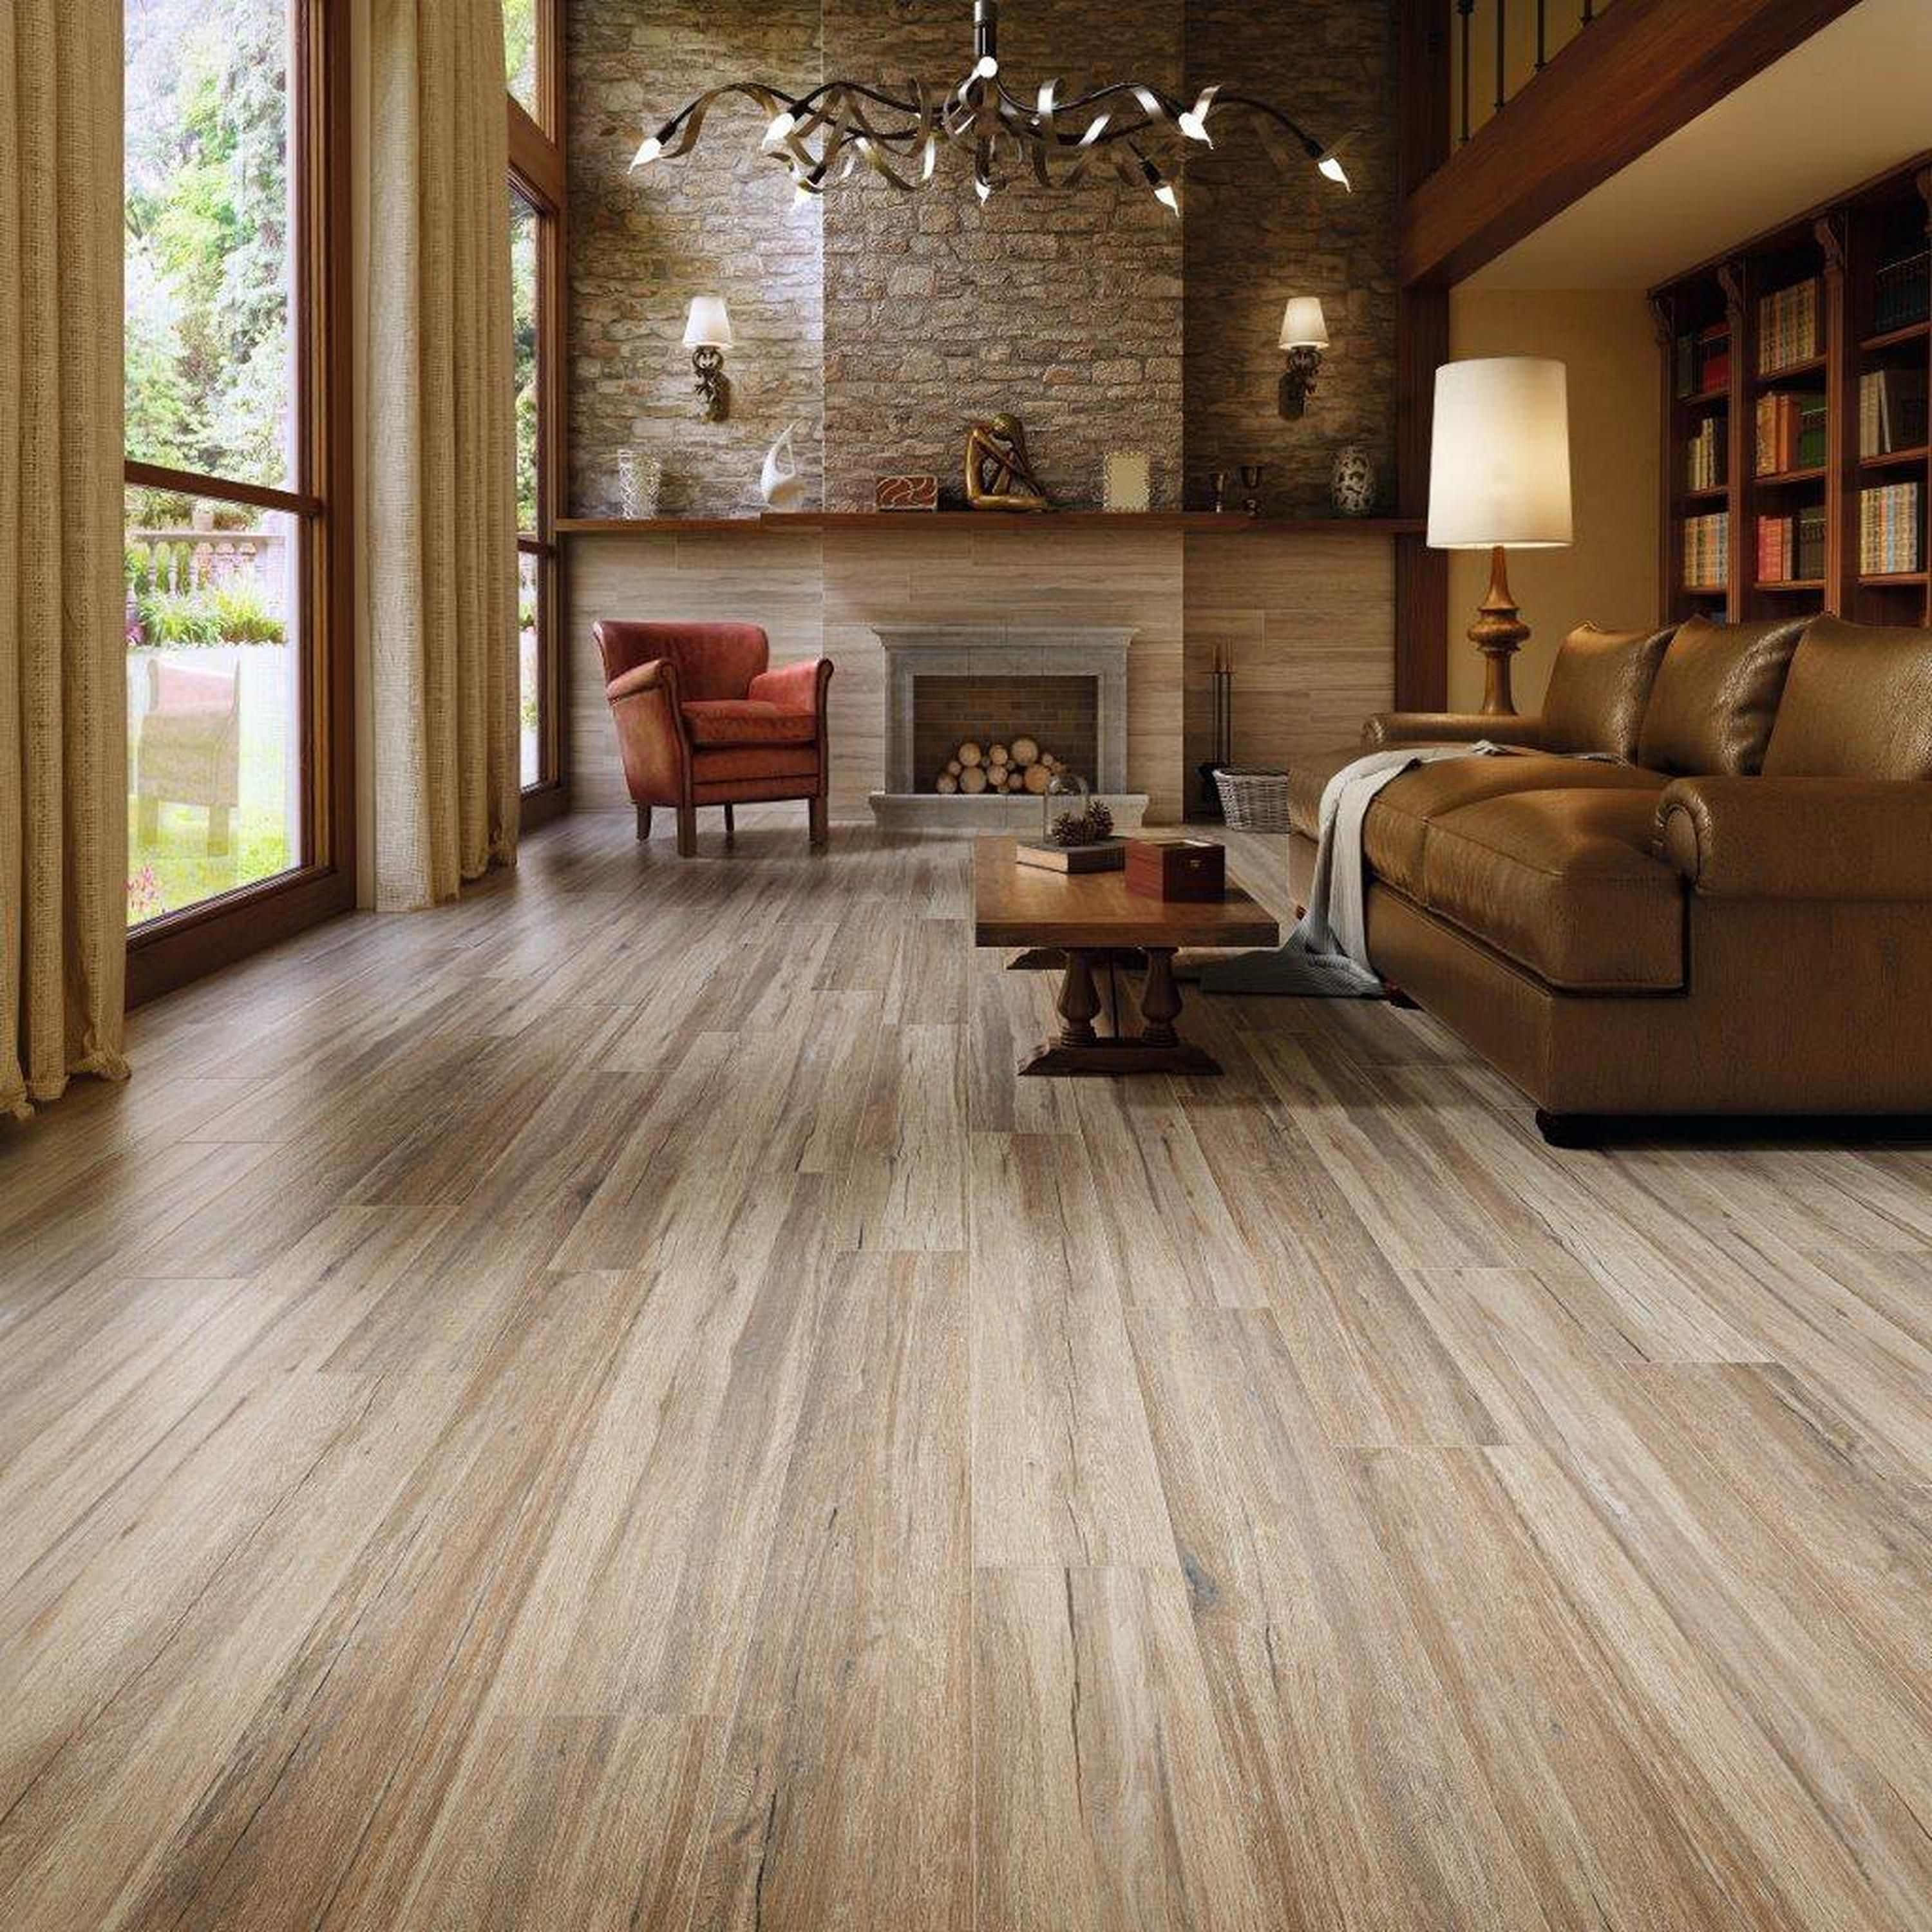 Navarro Beige Wood Plank Porcelain Tile Wood Planks Porcelain Tile And Plank